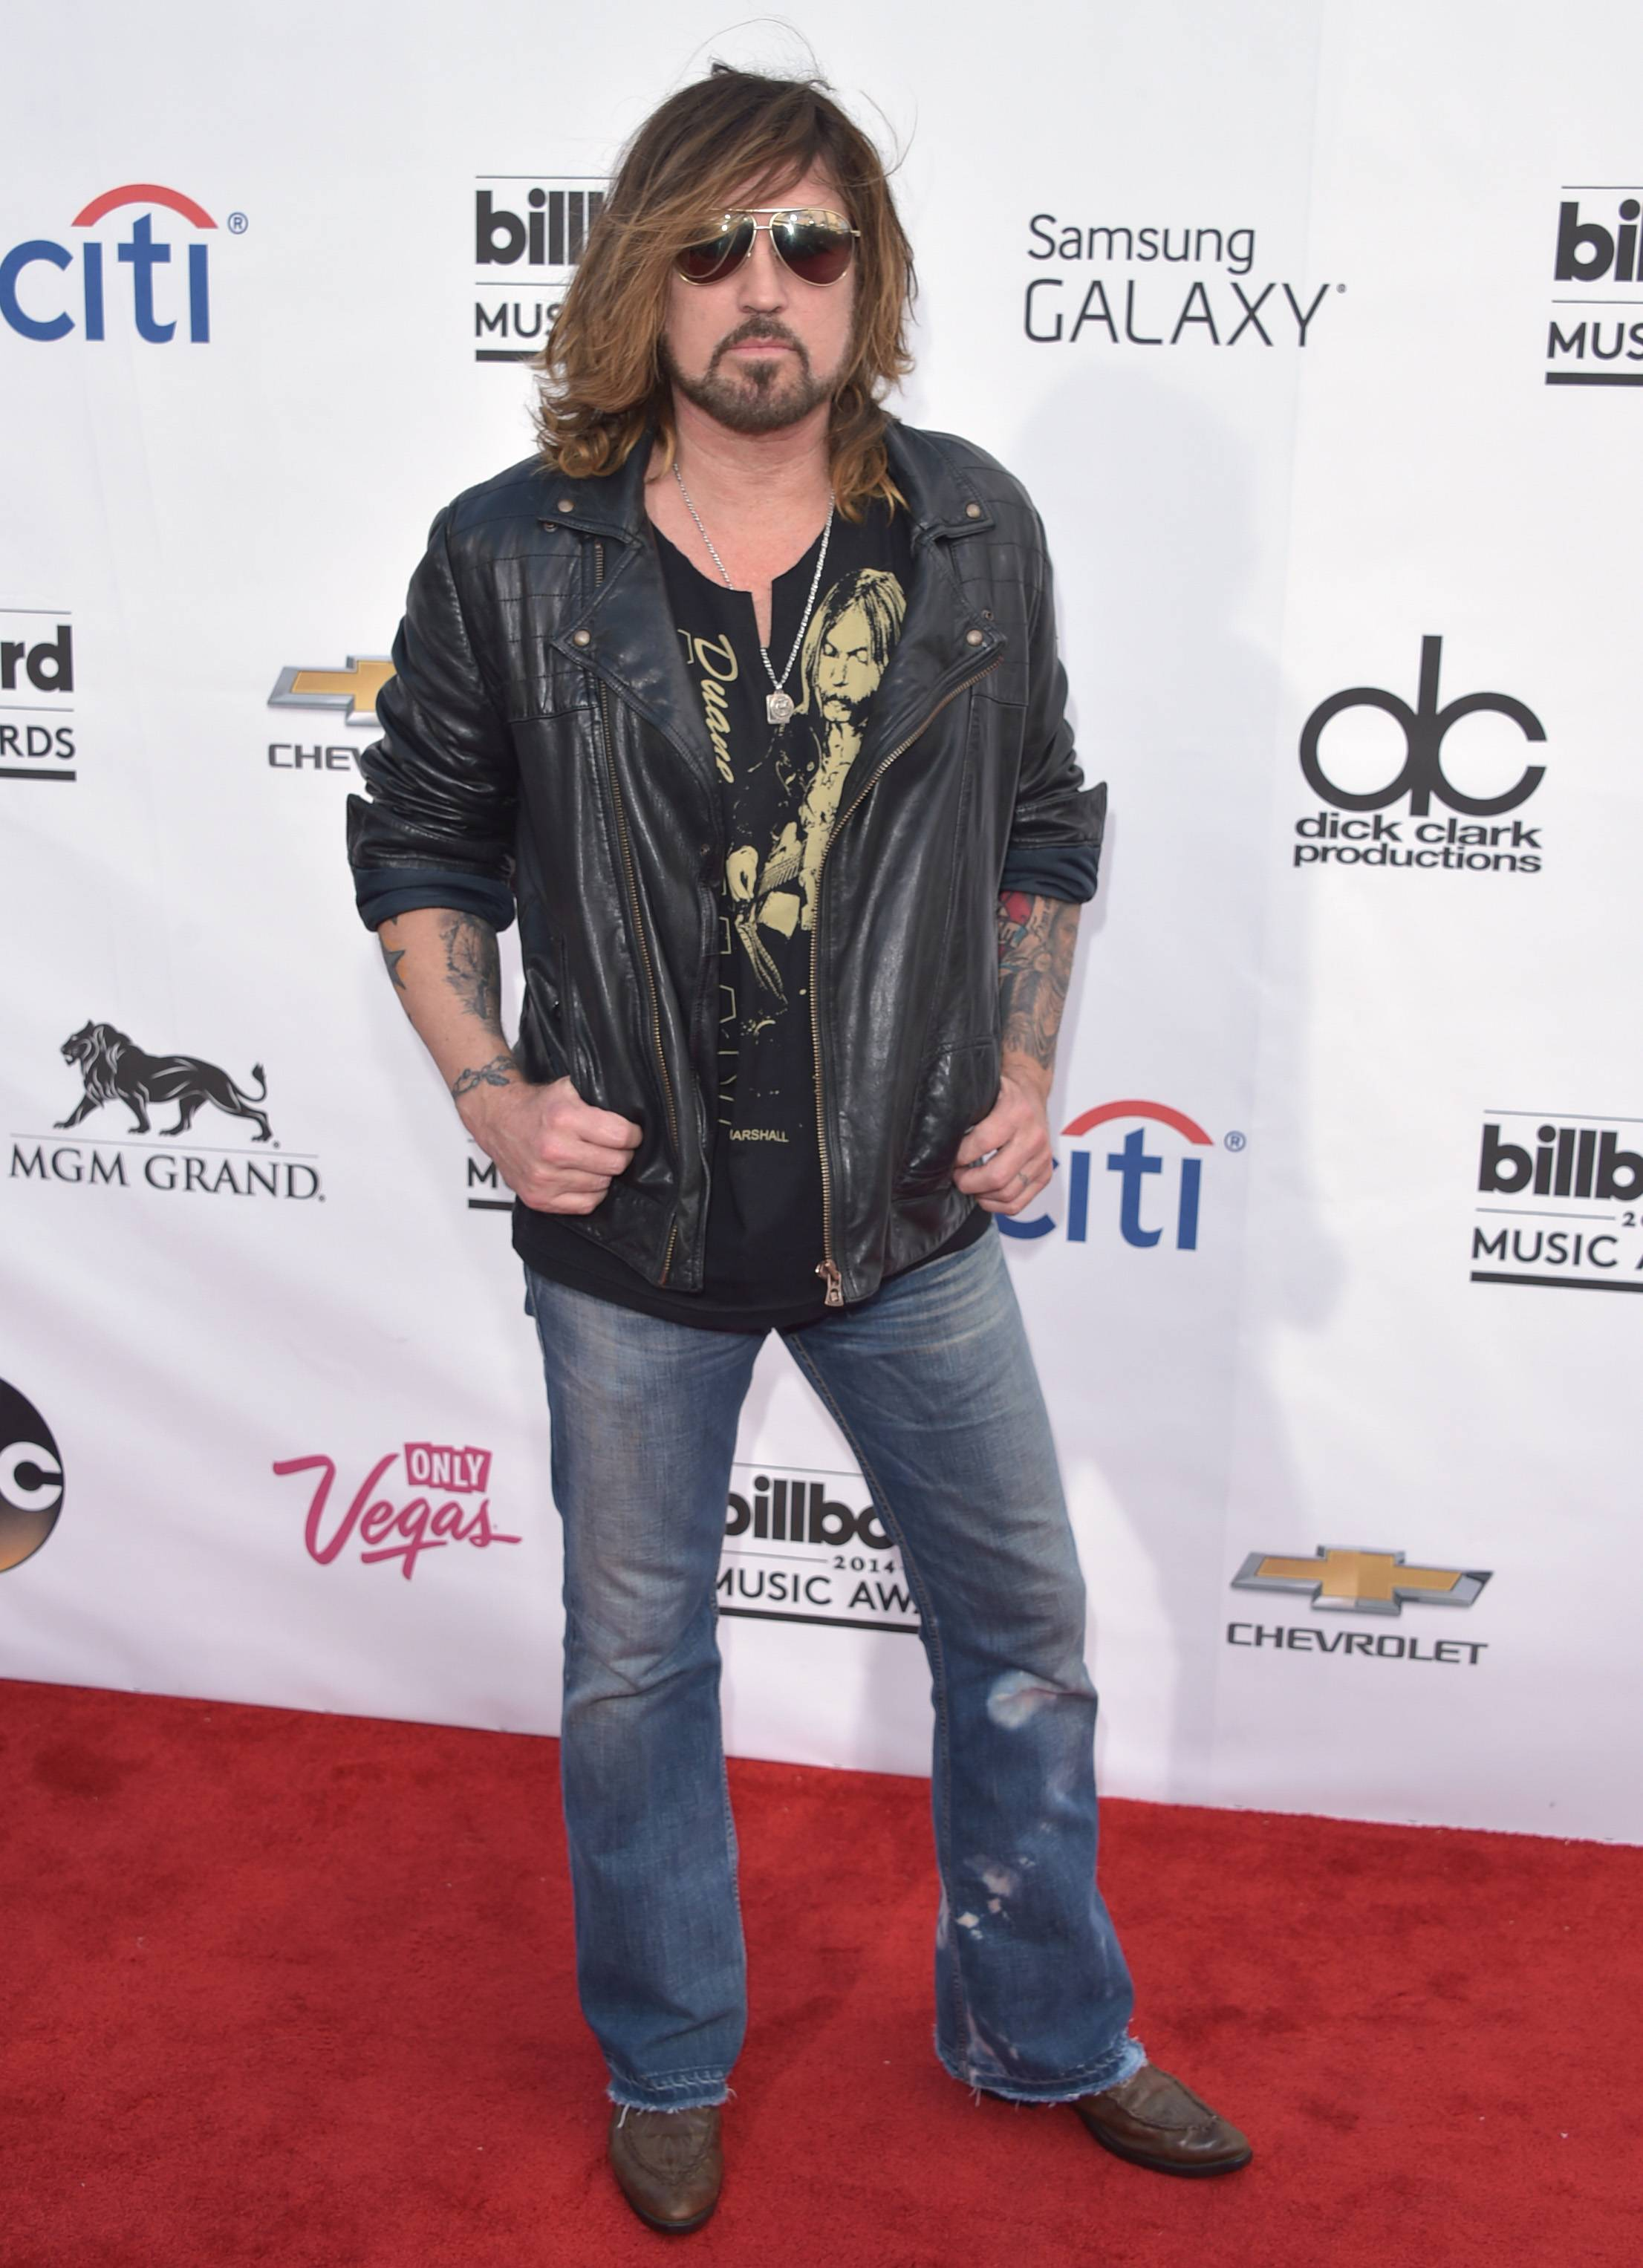 Billy Ray Cyrus arrives at the Billboard Music Awards at the MGM Grand Garden Arena on Sunday, May 18, 2014, in Las Vegas.